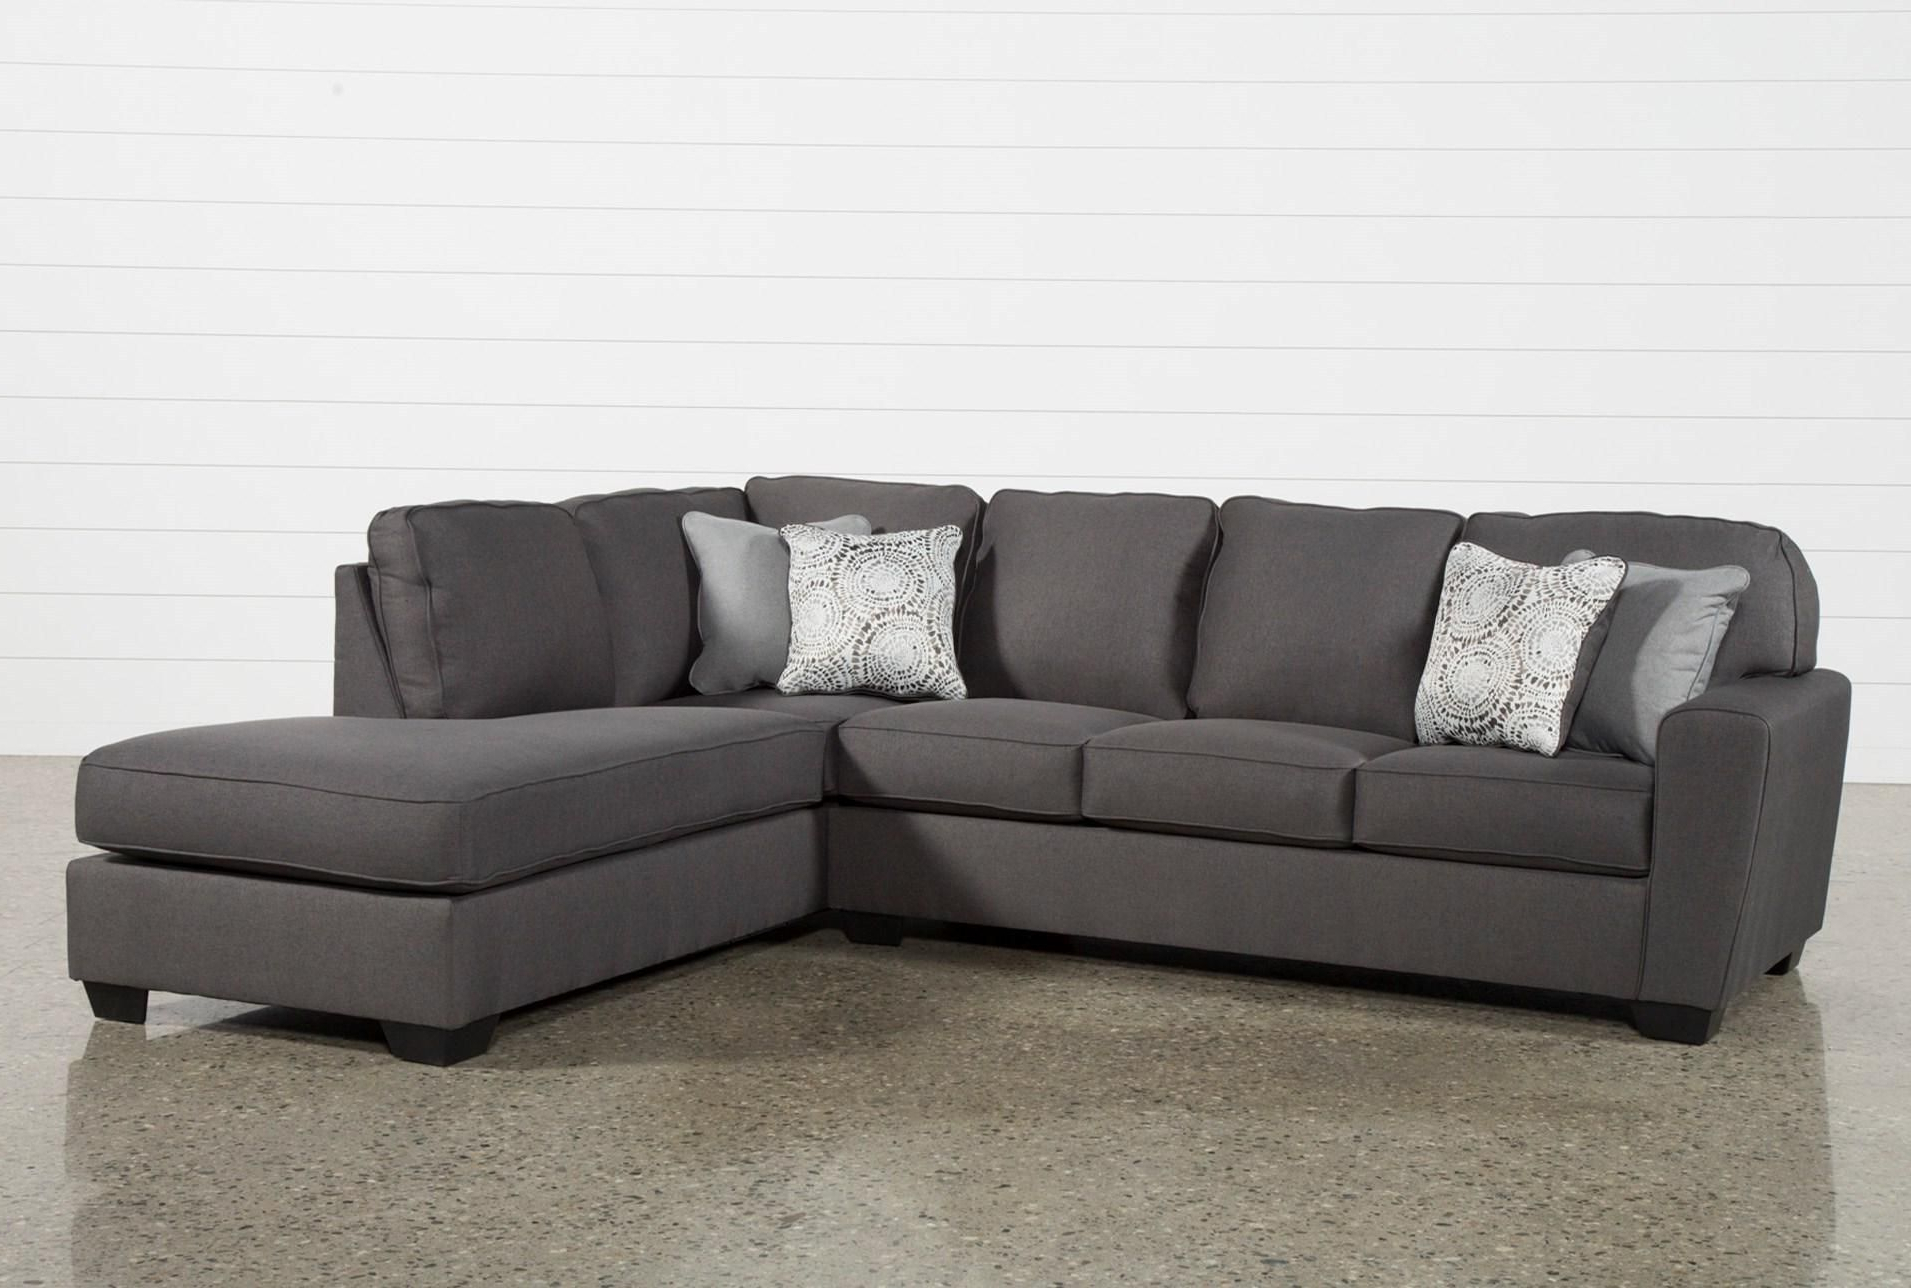 Preferred Mcdade Graphite 2 Piece Sectional W/raf Chaise In (View 2 of 20)